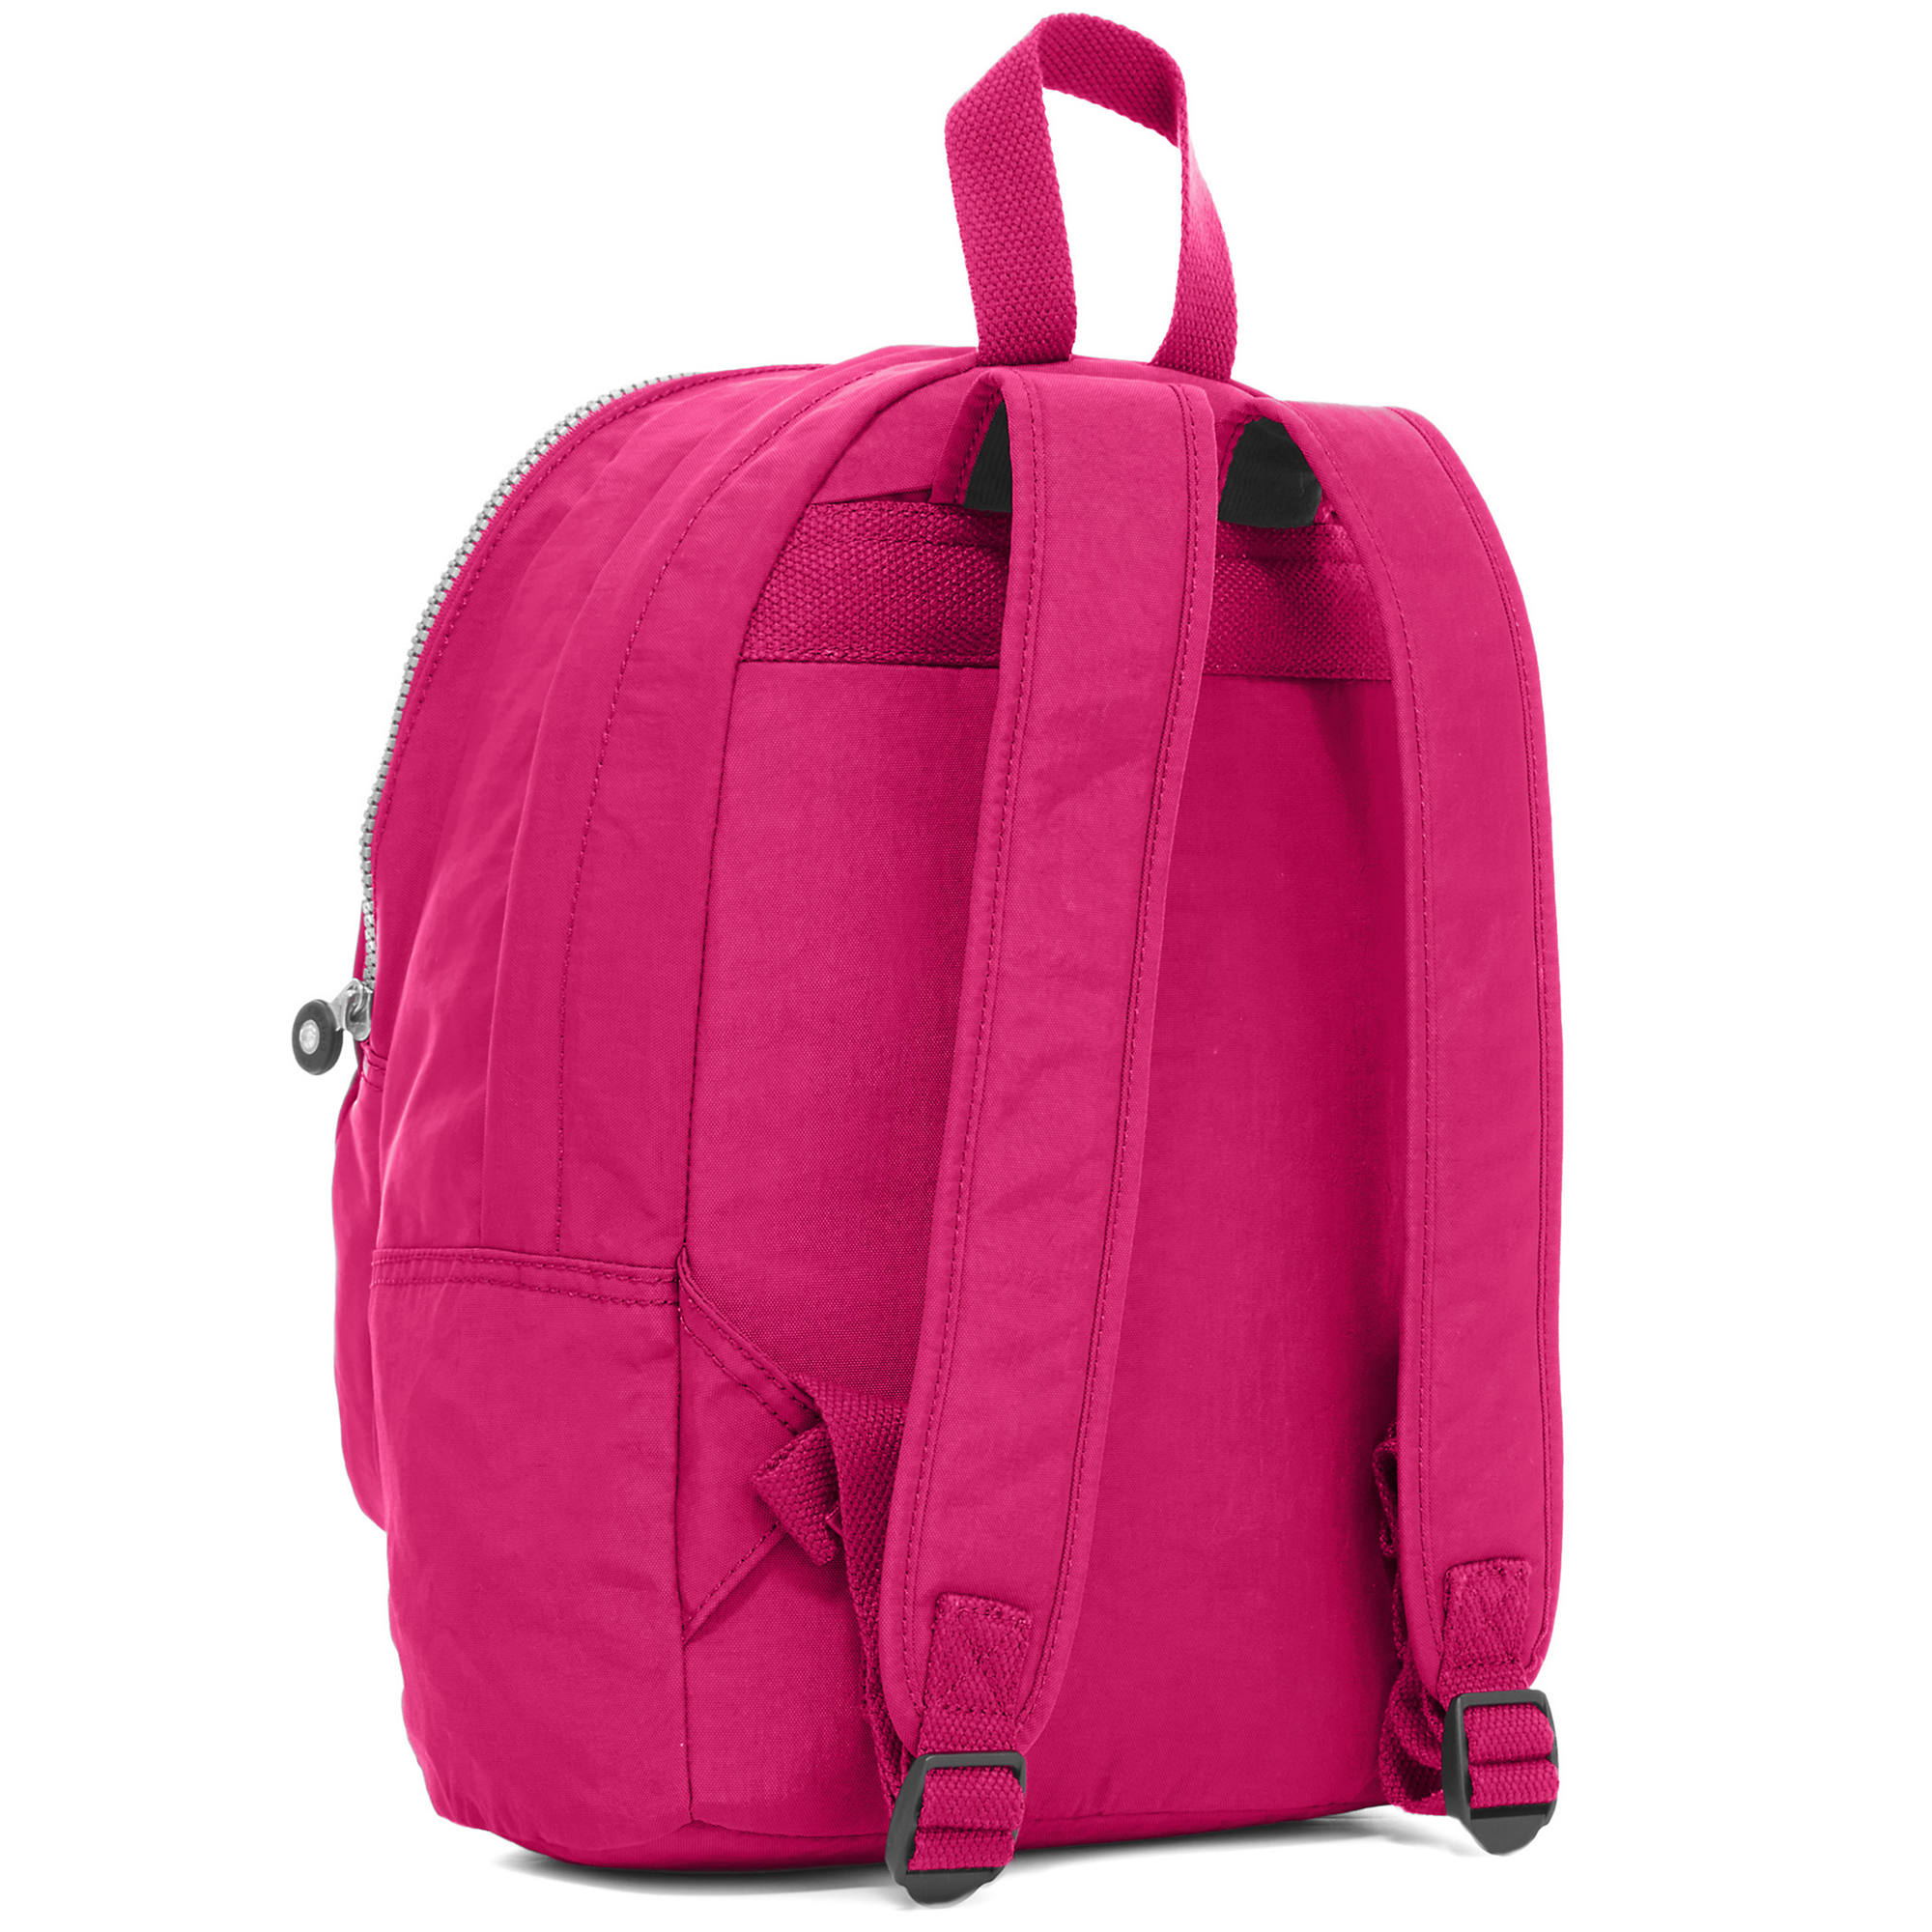 3b75cce33 Challenger II Small Backpack,Very Berry Classic,large